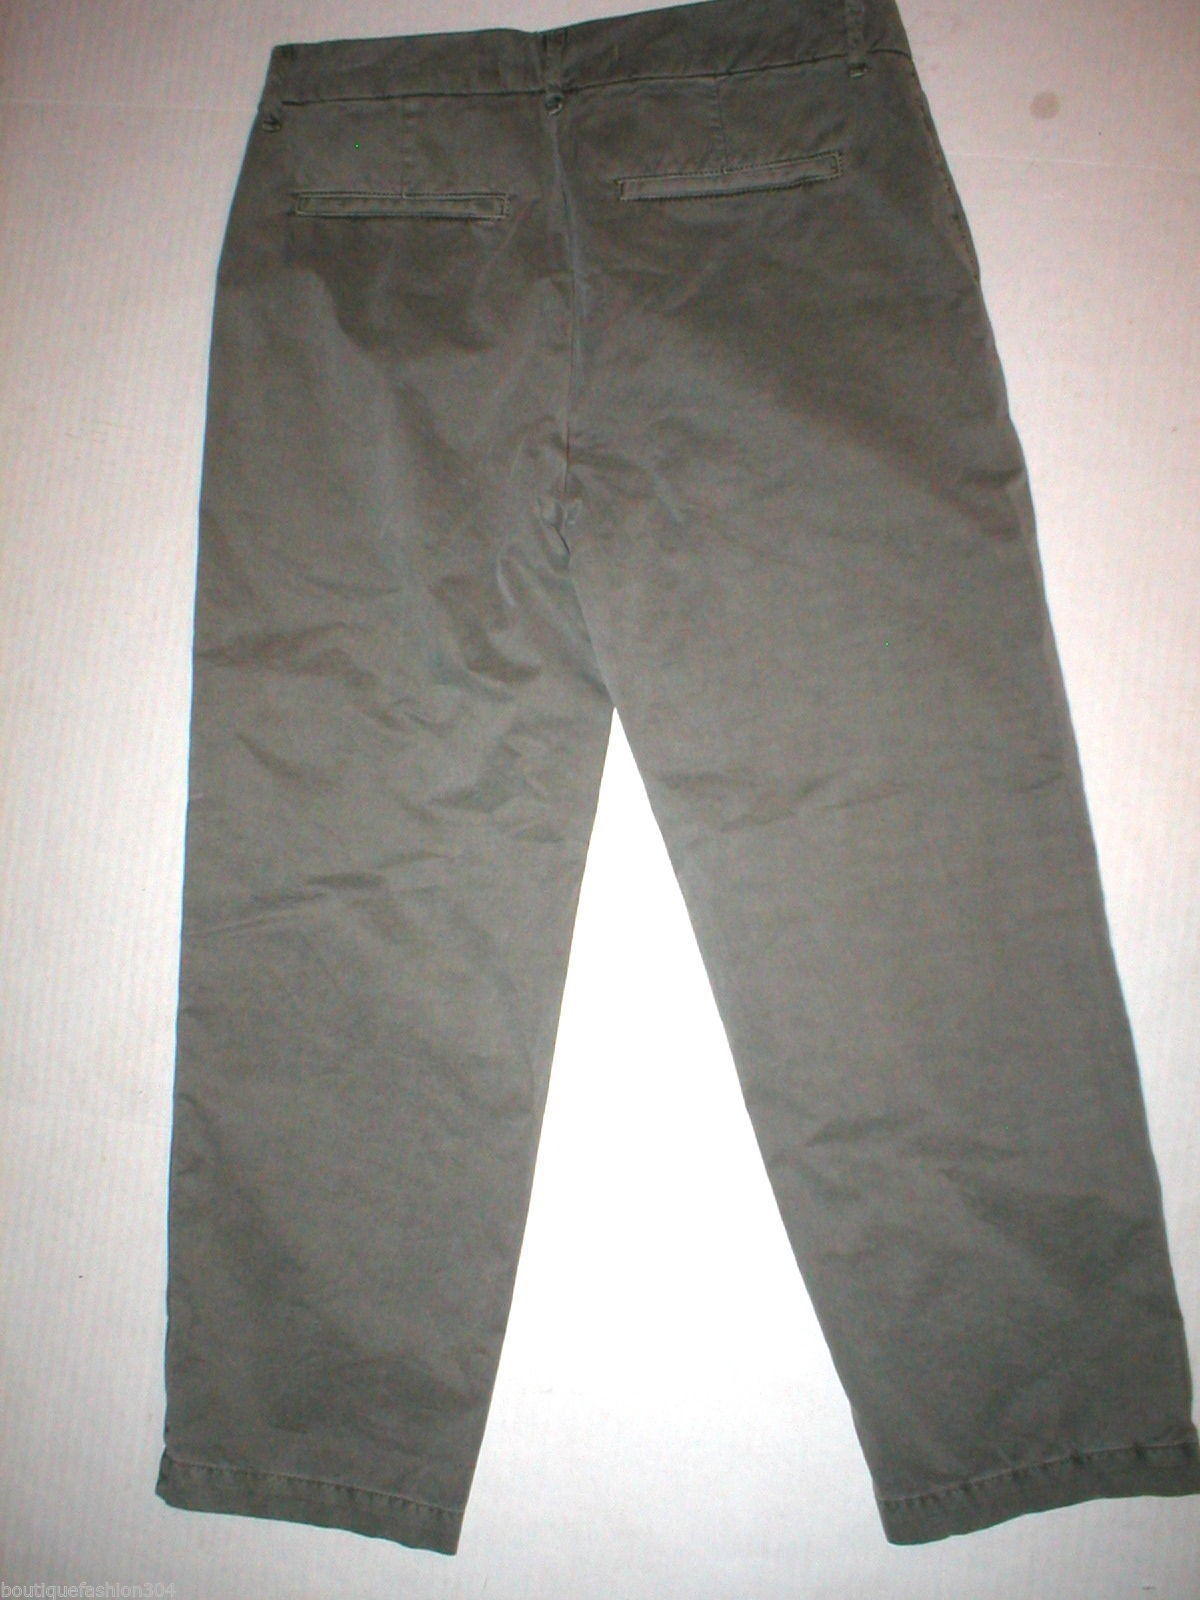 New J Brand Jeans Relaxed Womens Parker Vin Fort 25 Chino Pant Army Green Cotto image 6